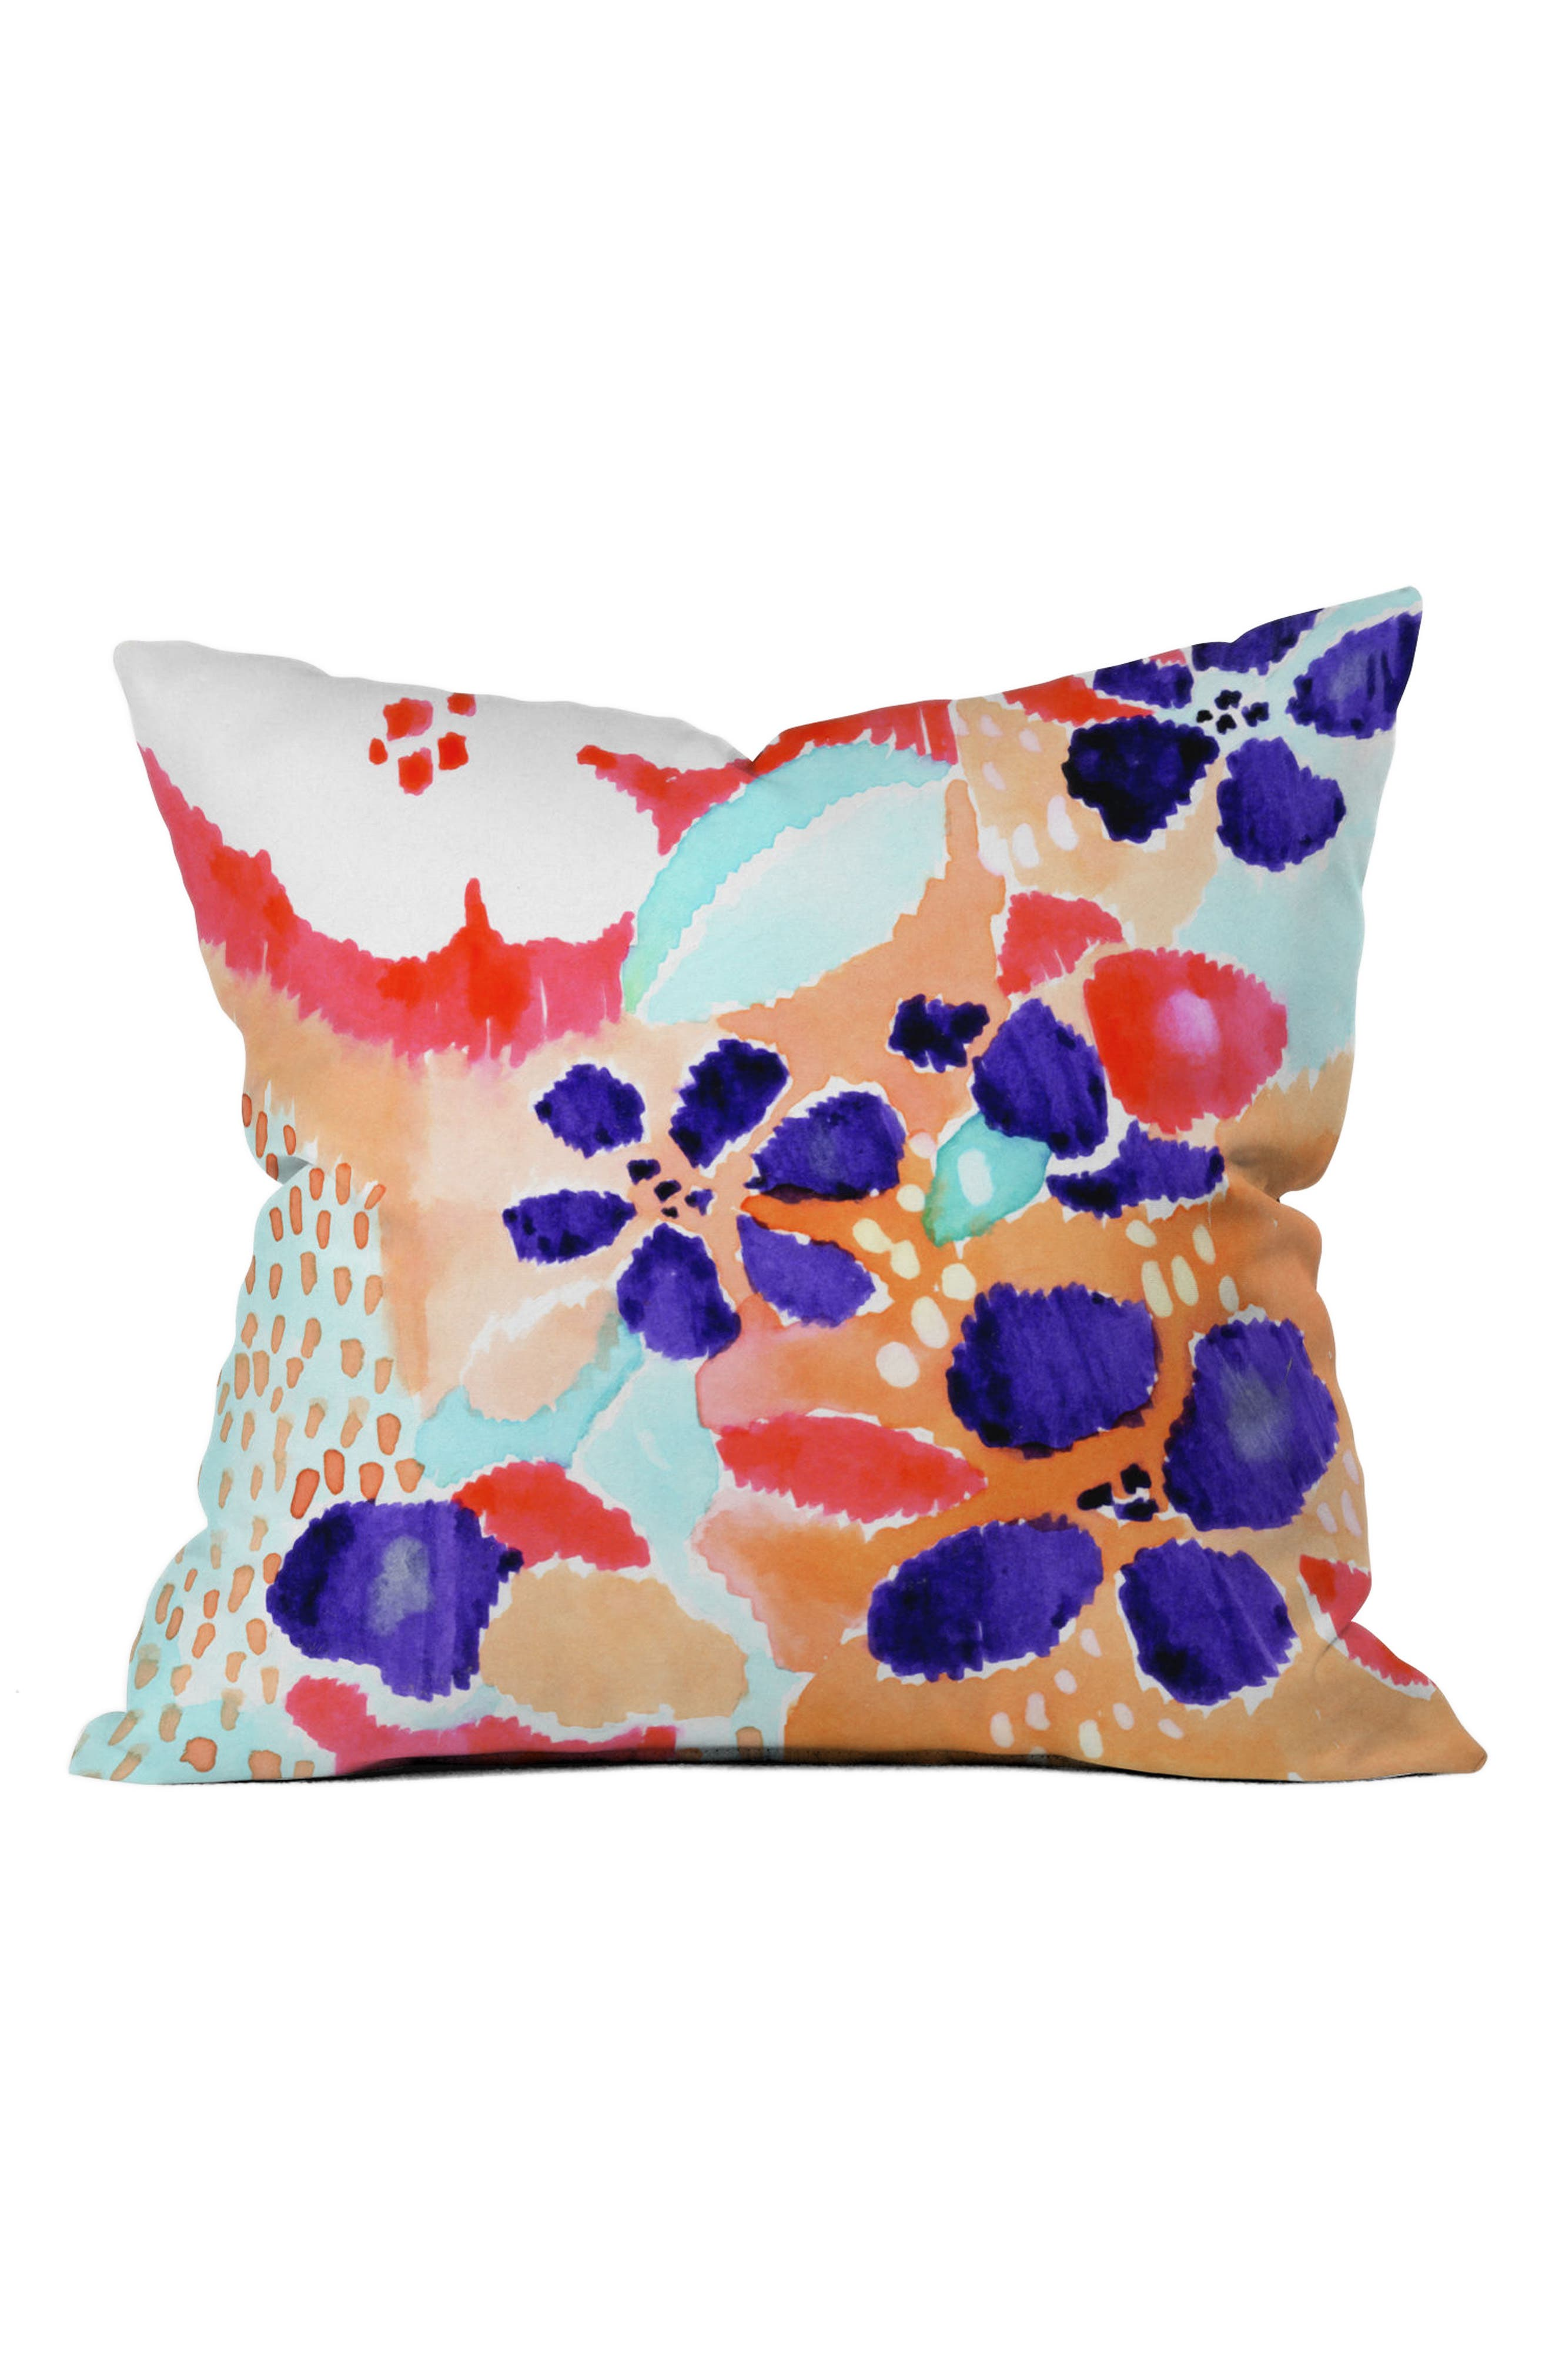 Main Image - DENY Designs Floral Pillow